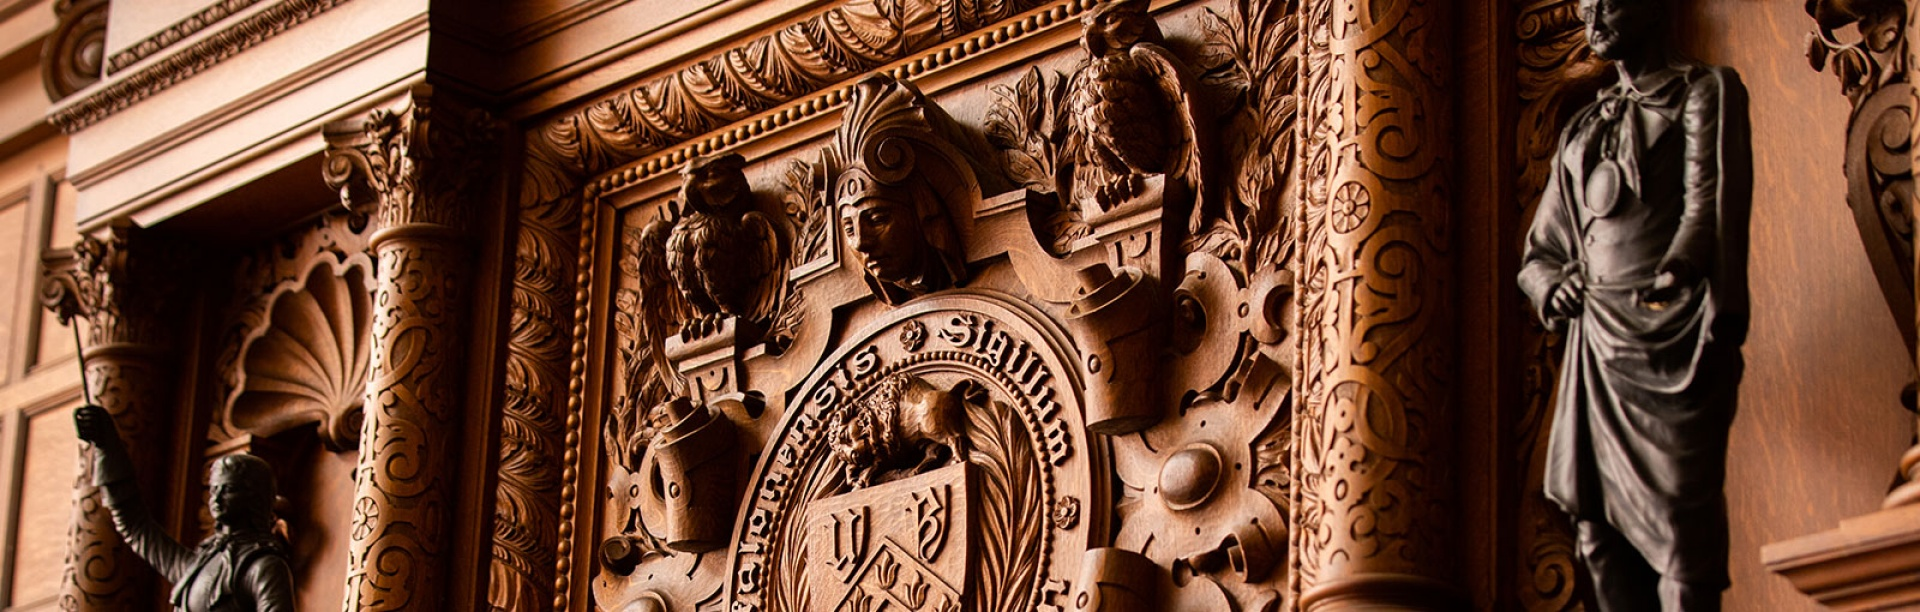 Detail of heavily carved wooden mantle at the Health Sciences Library main reading room.